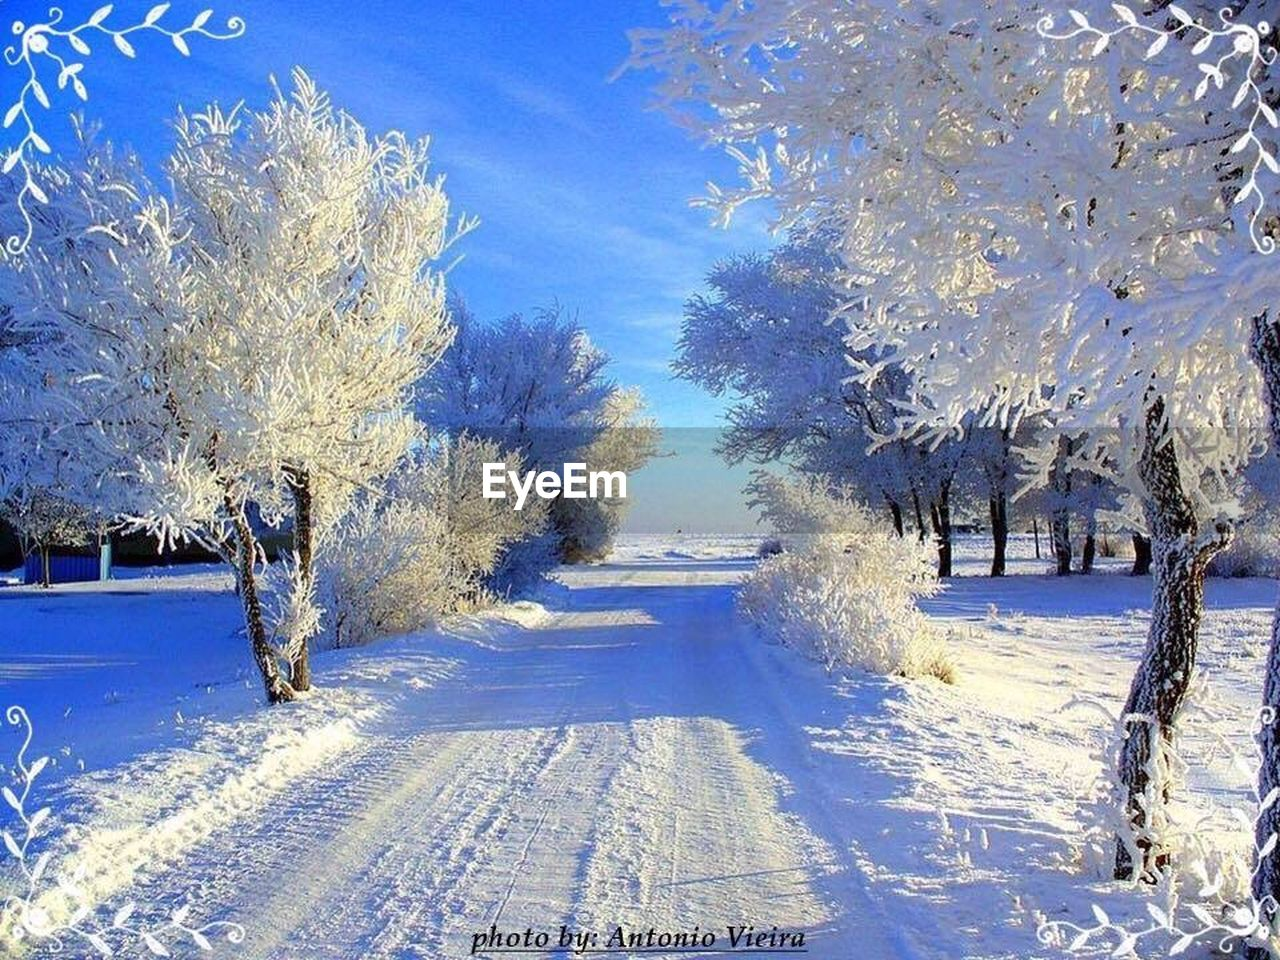 snow, tree, winter, cold temperature, nature, tranquility, tranquil scene, beauty in nature, landscape, blue, day, outdoors, scenics, road, bare tree, no people, sky